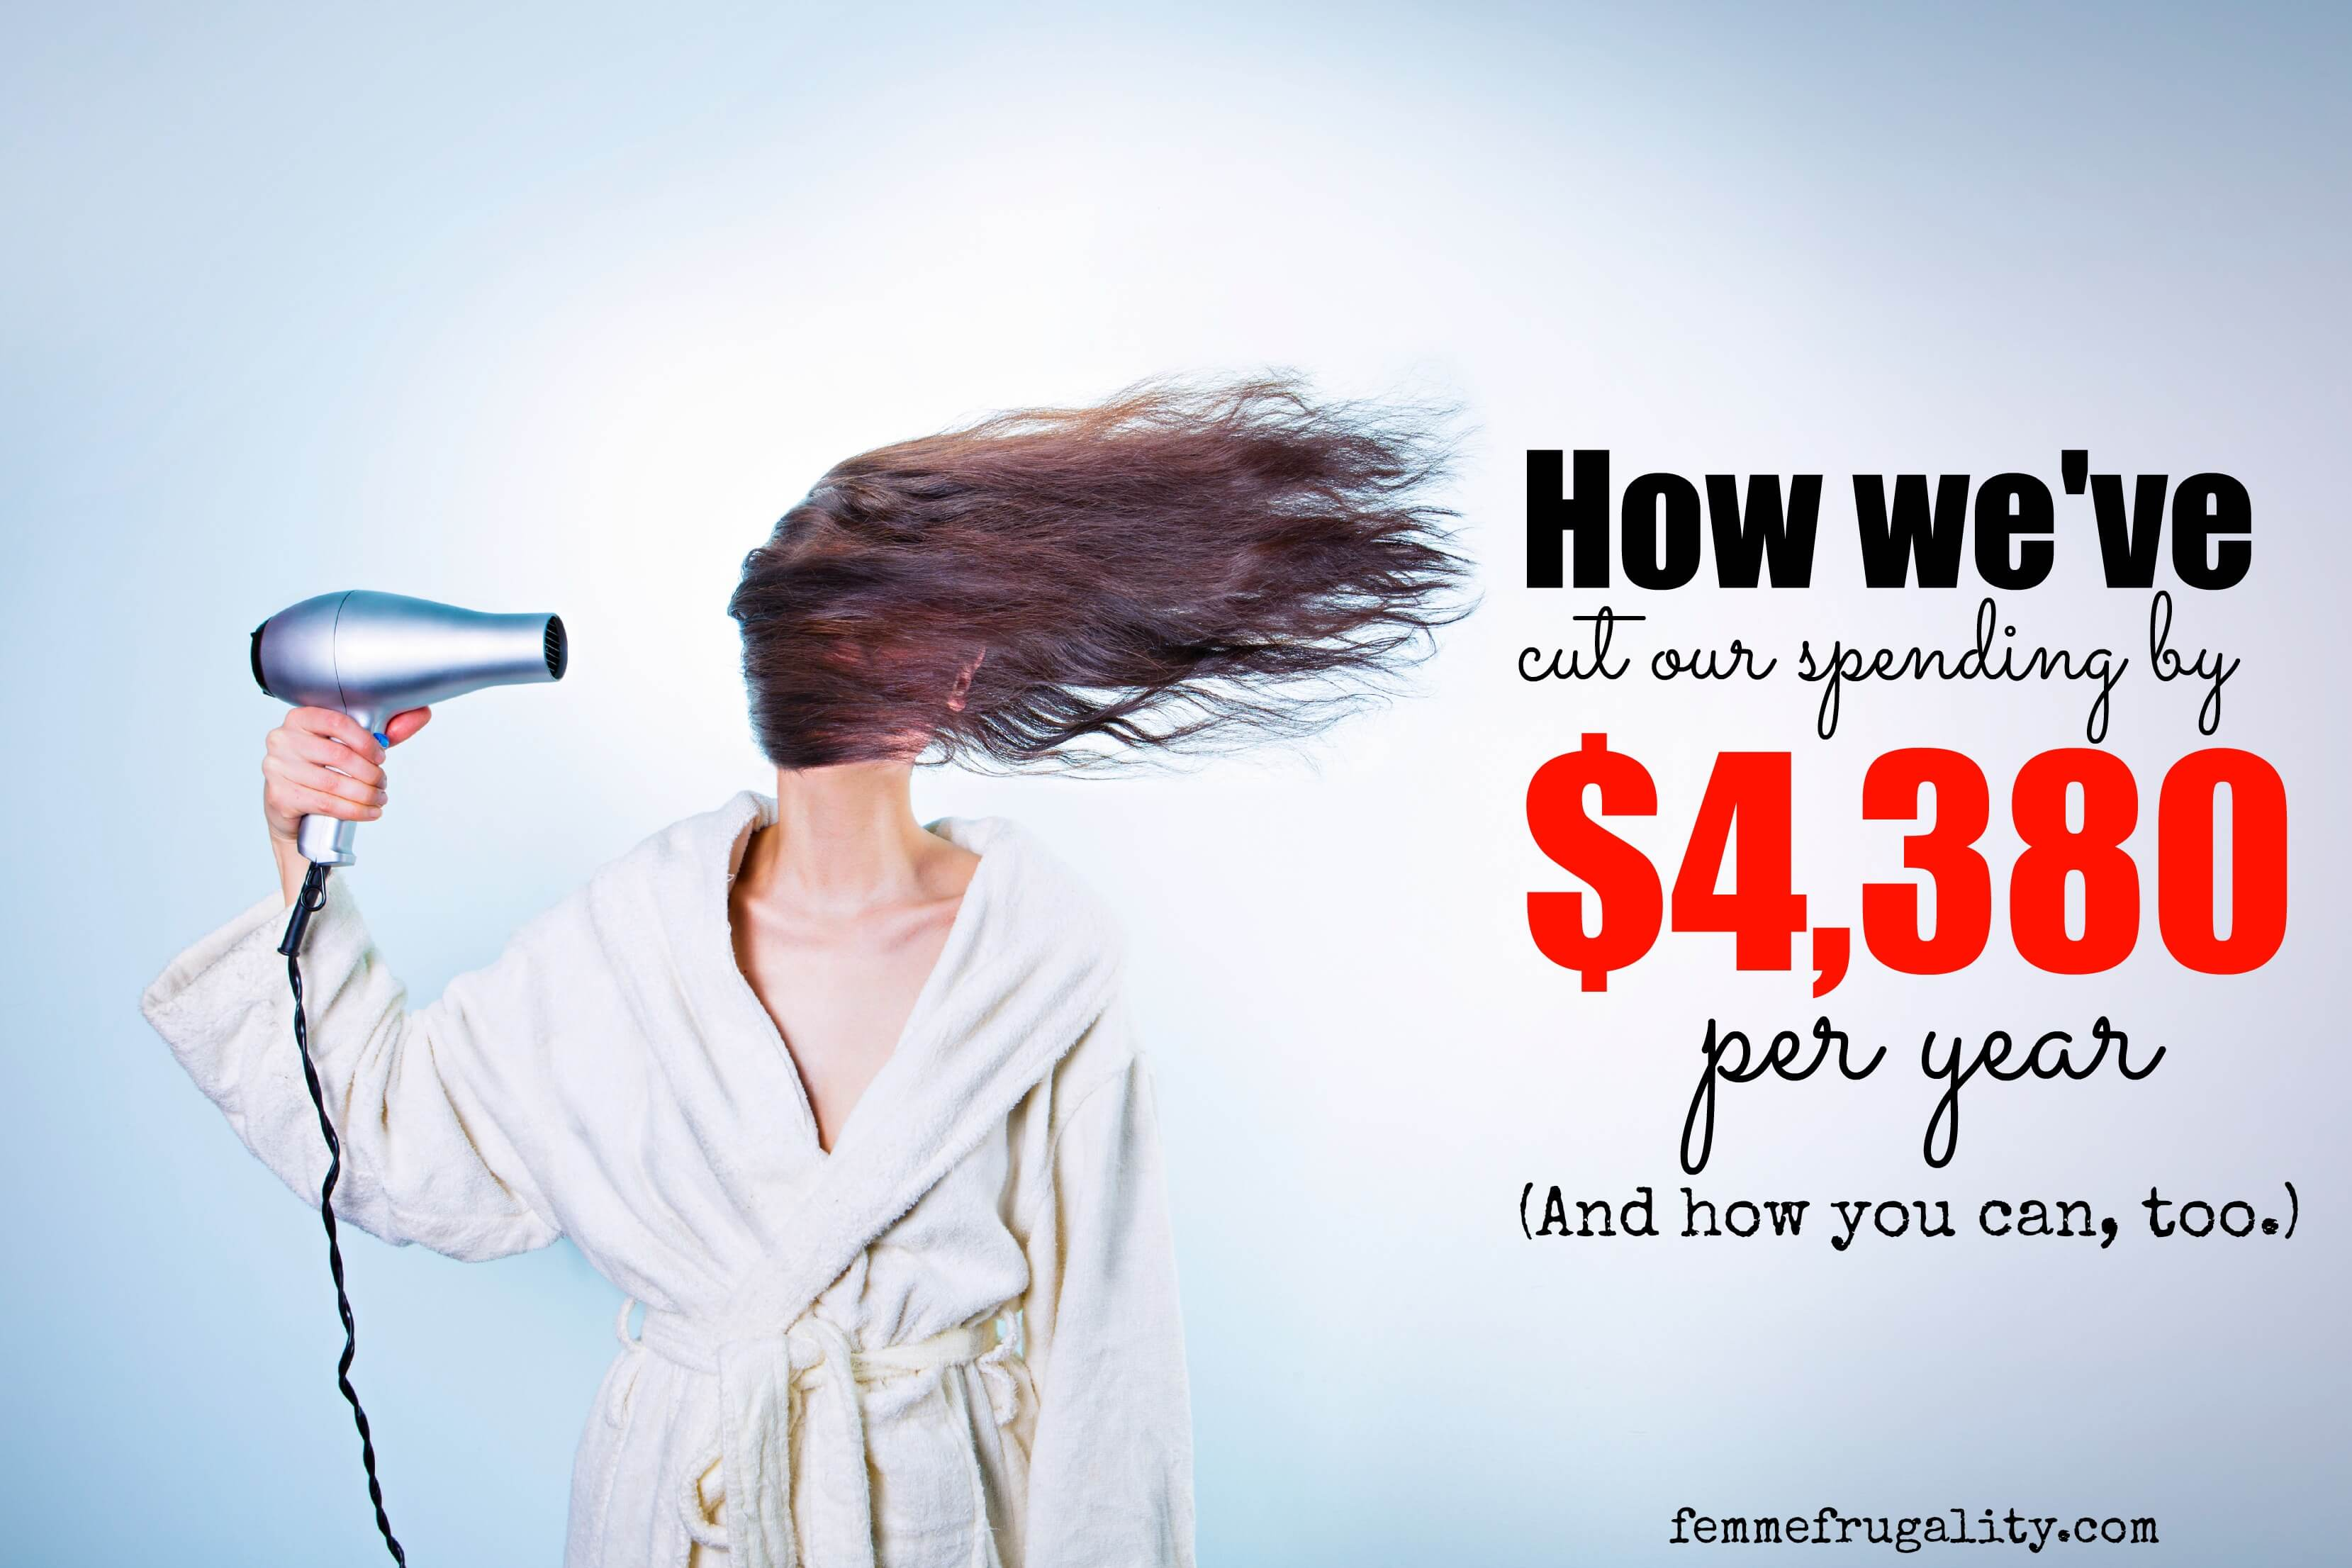 We've found a way to cut $4,380 of spending out of our budget. Learn how you can do the same.